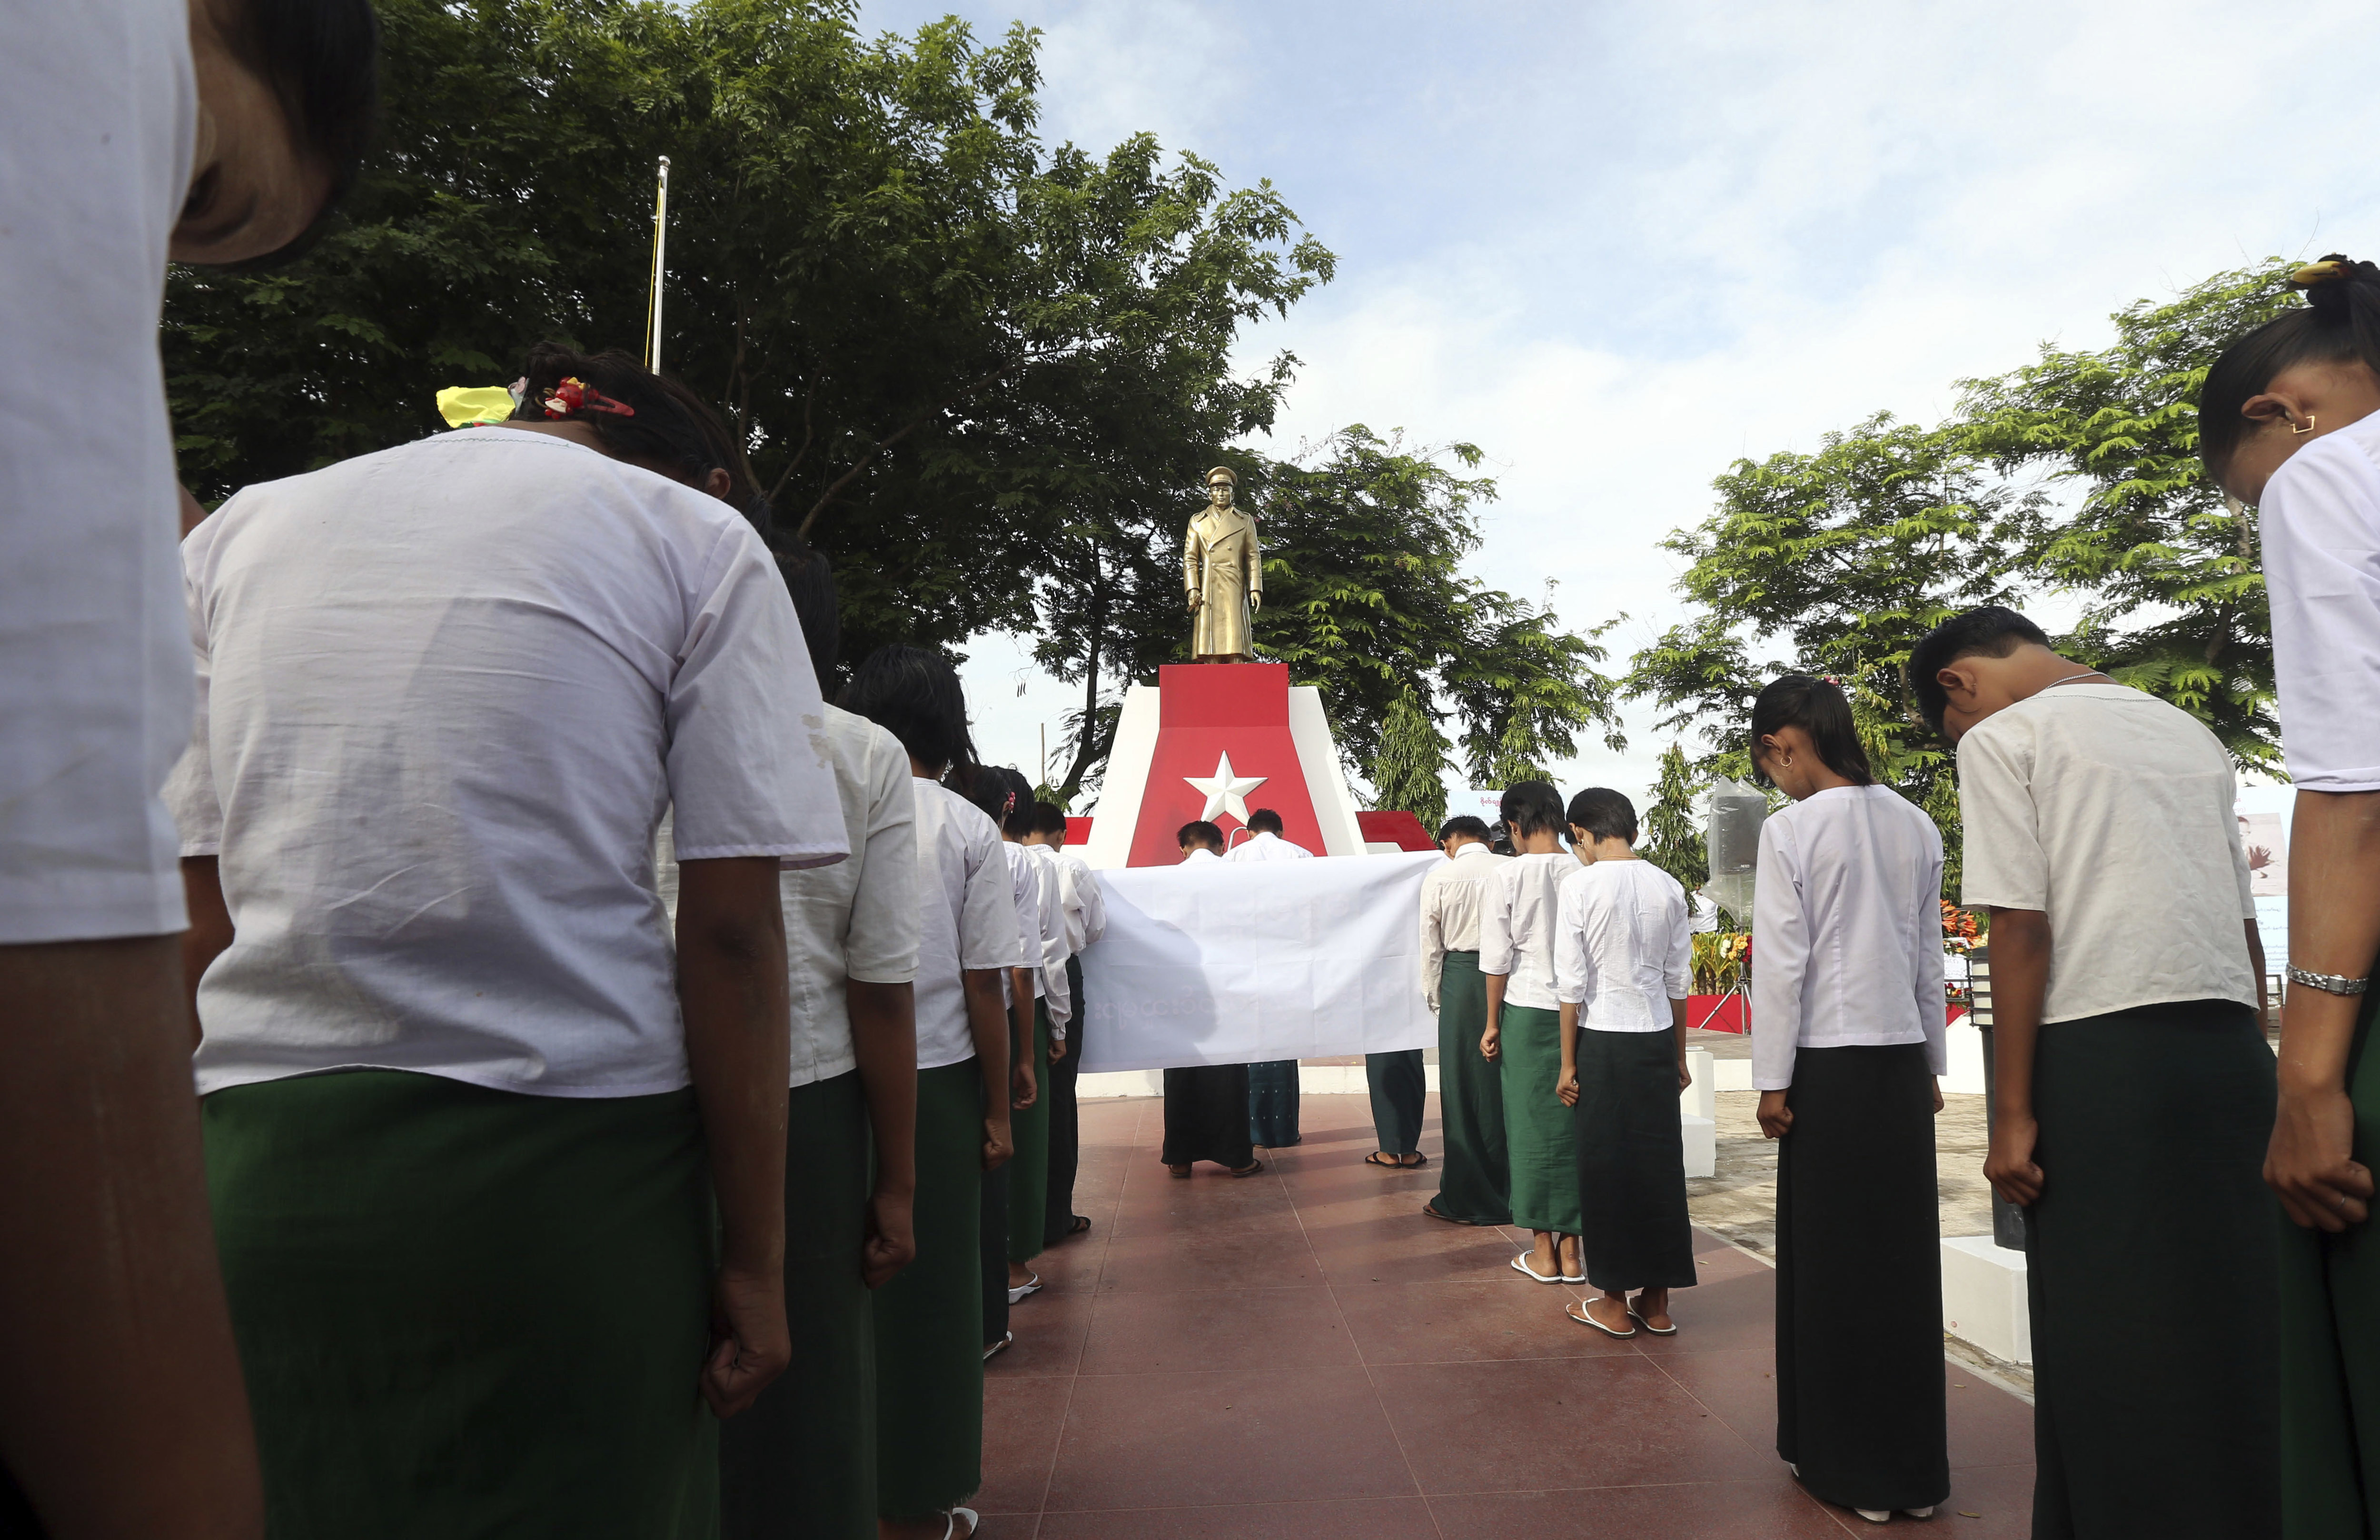 FILE - Students bow before a statue of Myanmar national hero Gen. Aung San during a ceremony in Naypyitaw, Myanmar, July 19, 2017.